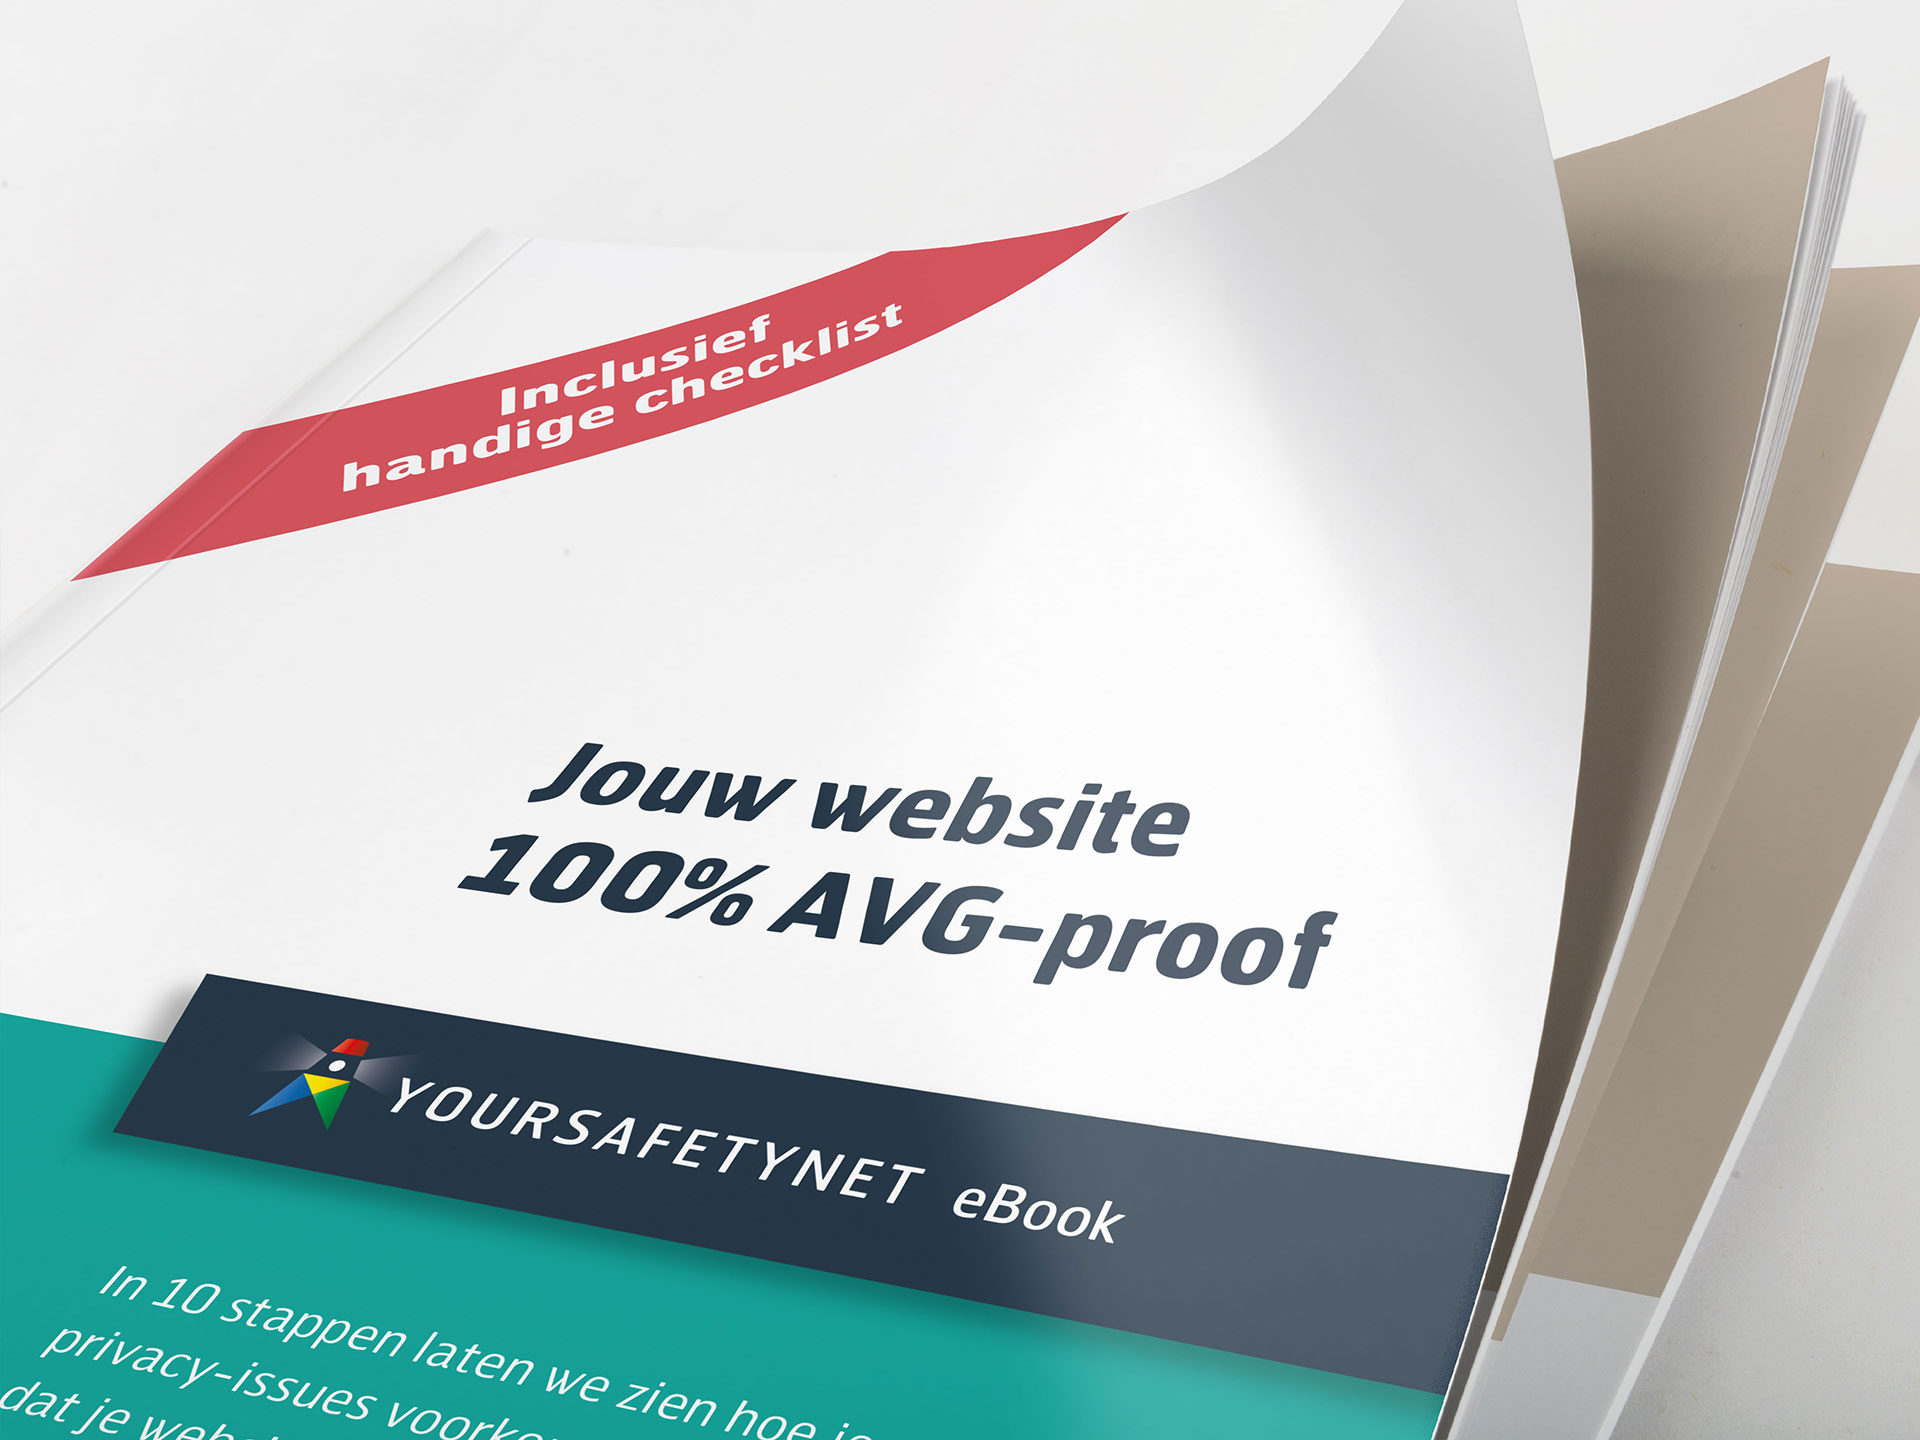 Jouw website 100% AVG-proof